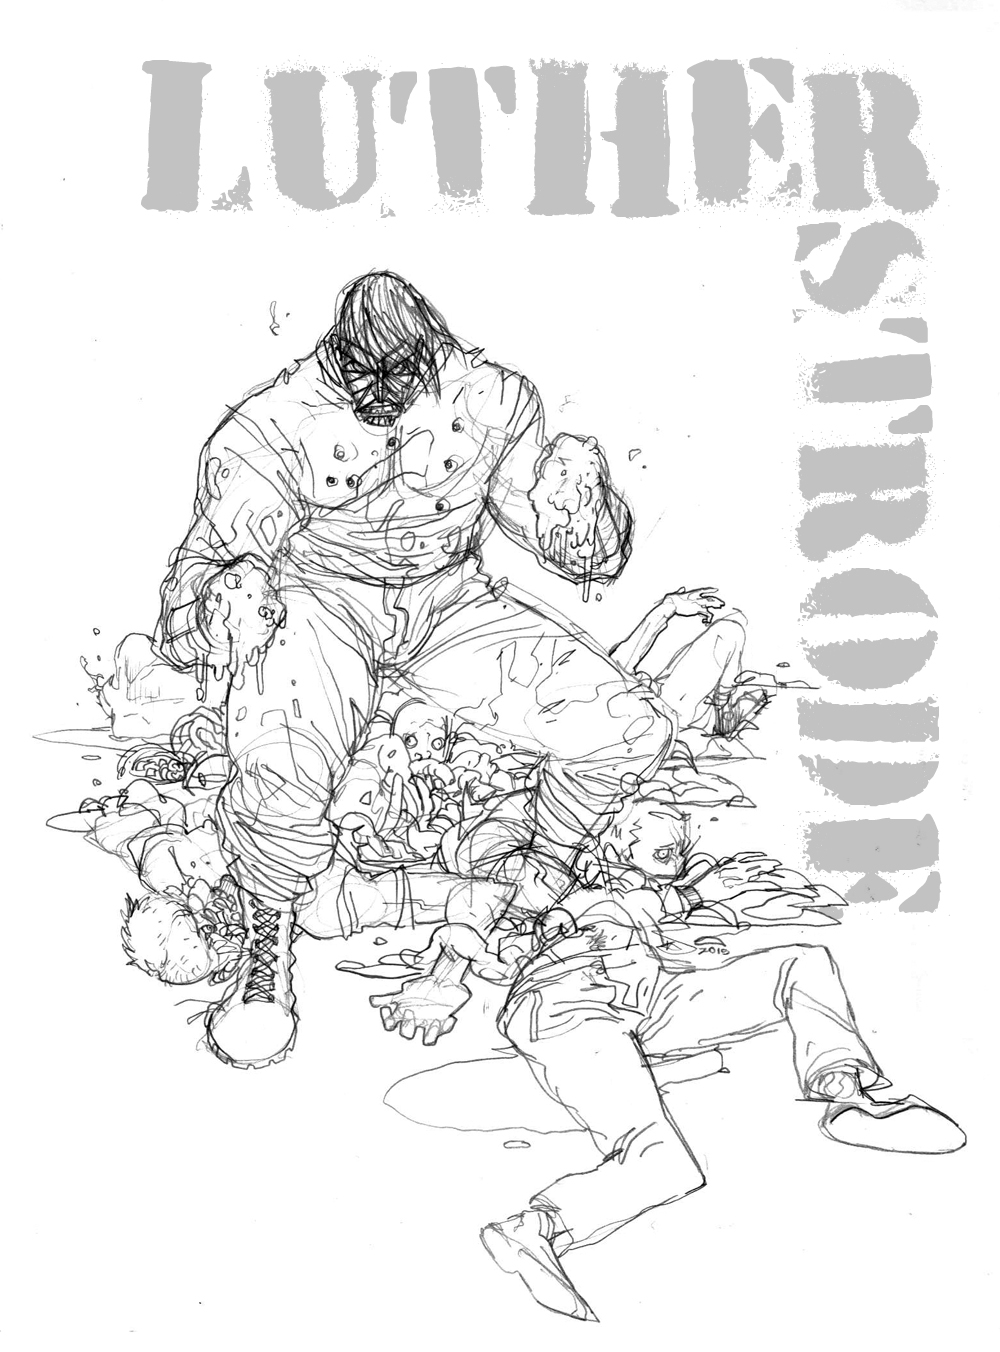 LUTHER STRODE by COUNTPAGAN